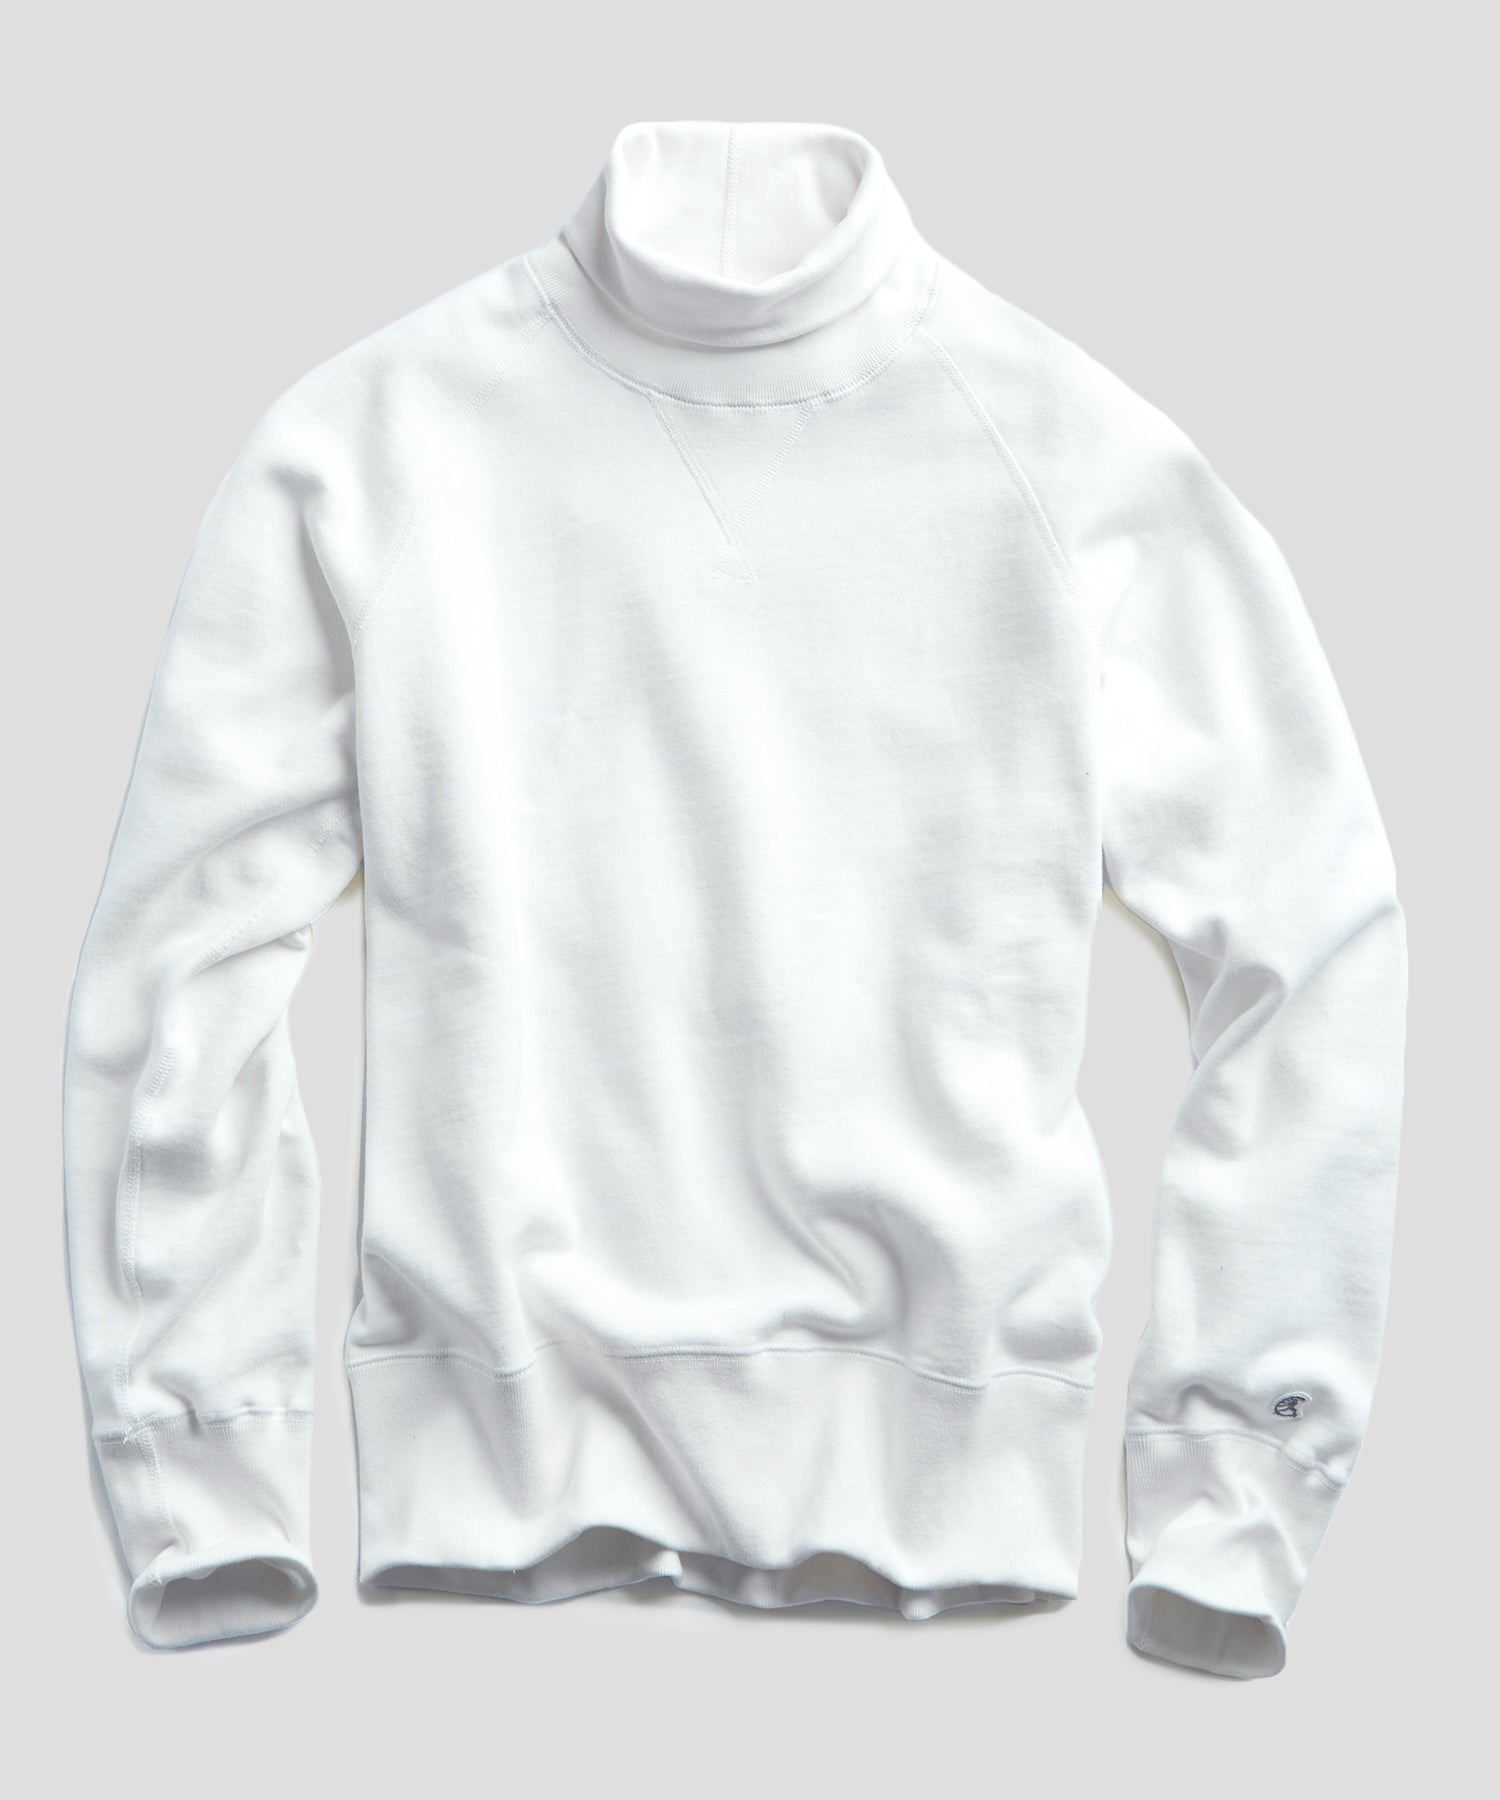 Turtleneck Sweatshirt in White